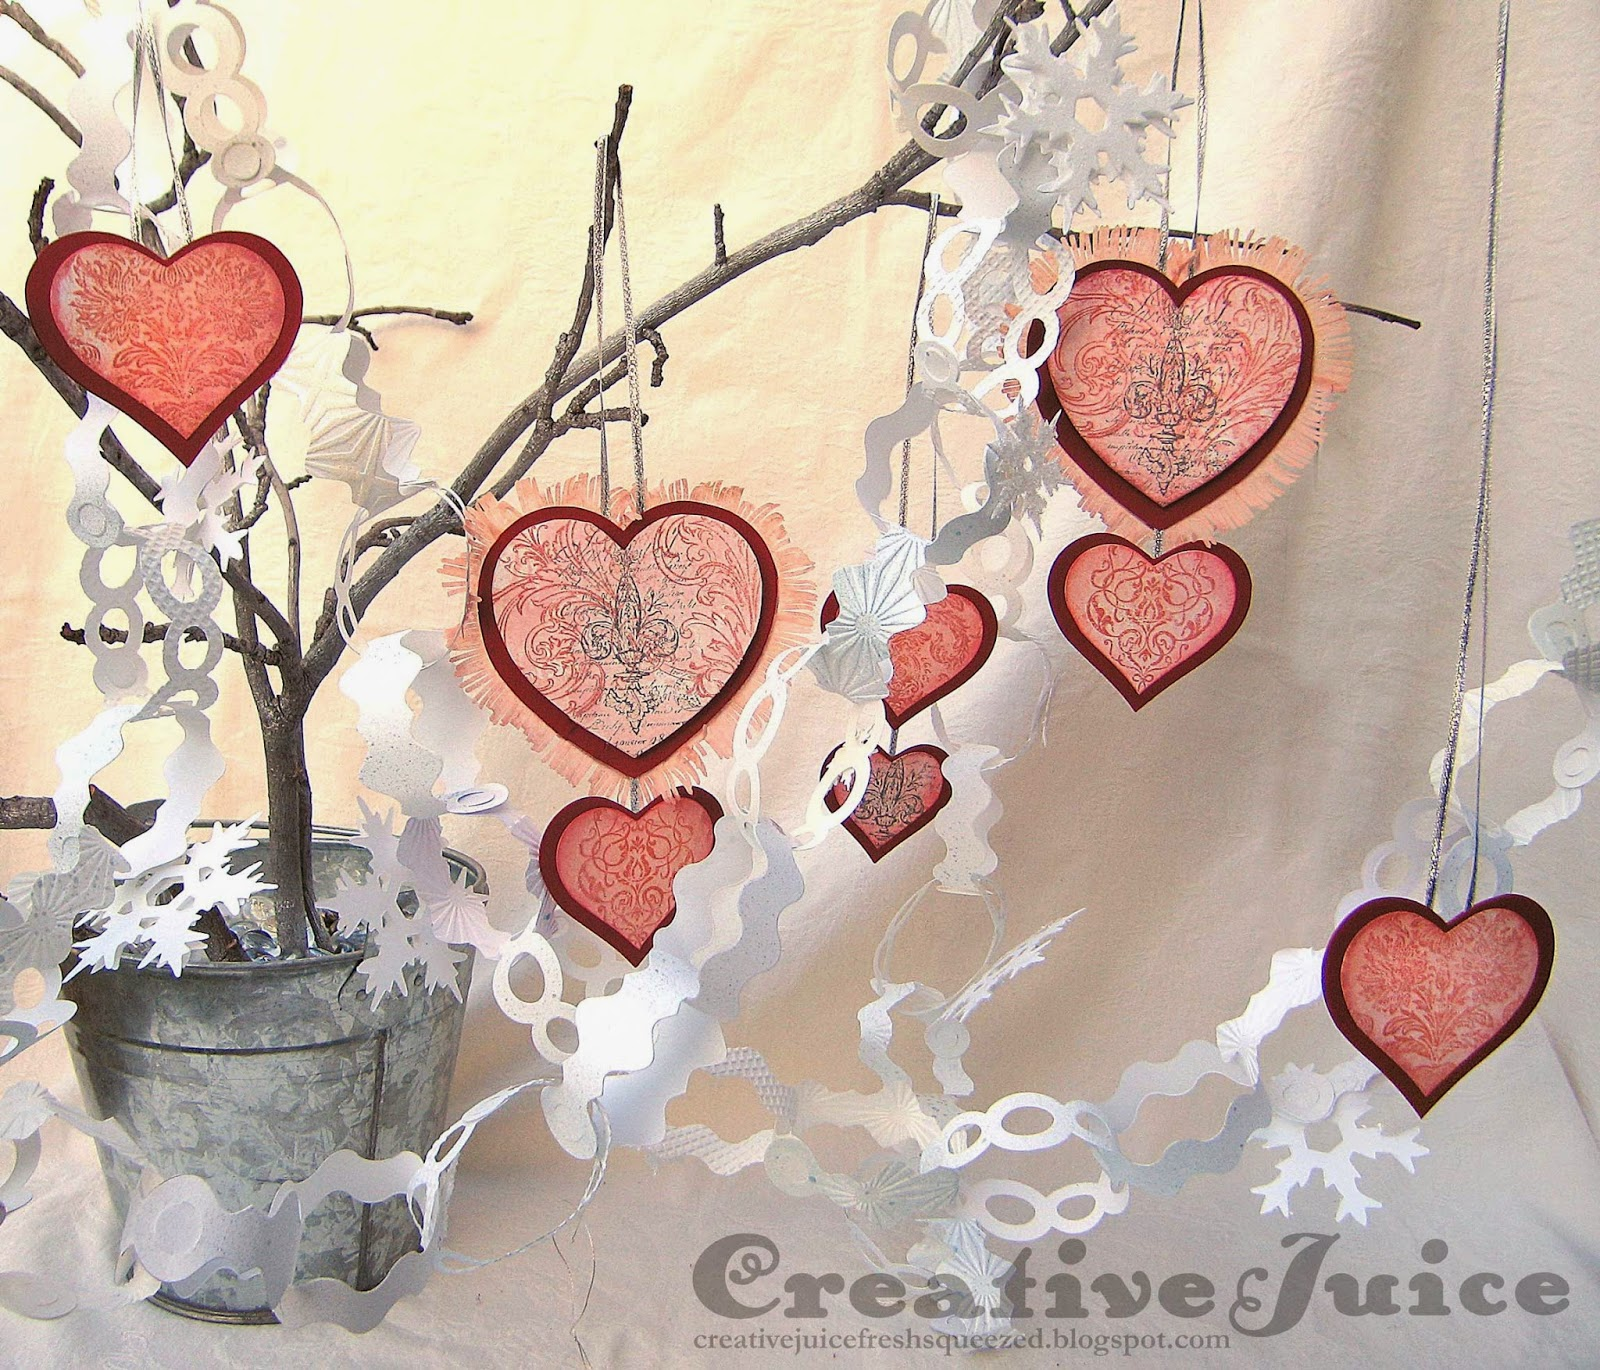 Lisa Hoel_Vintage Kitchen Garland_Valentine's Day